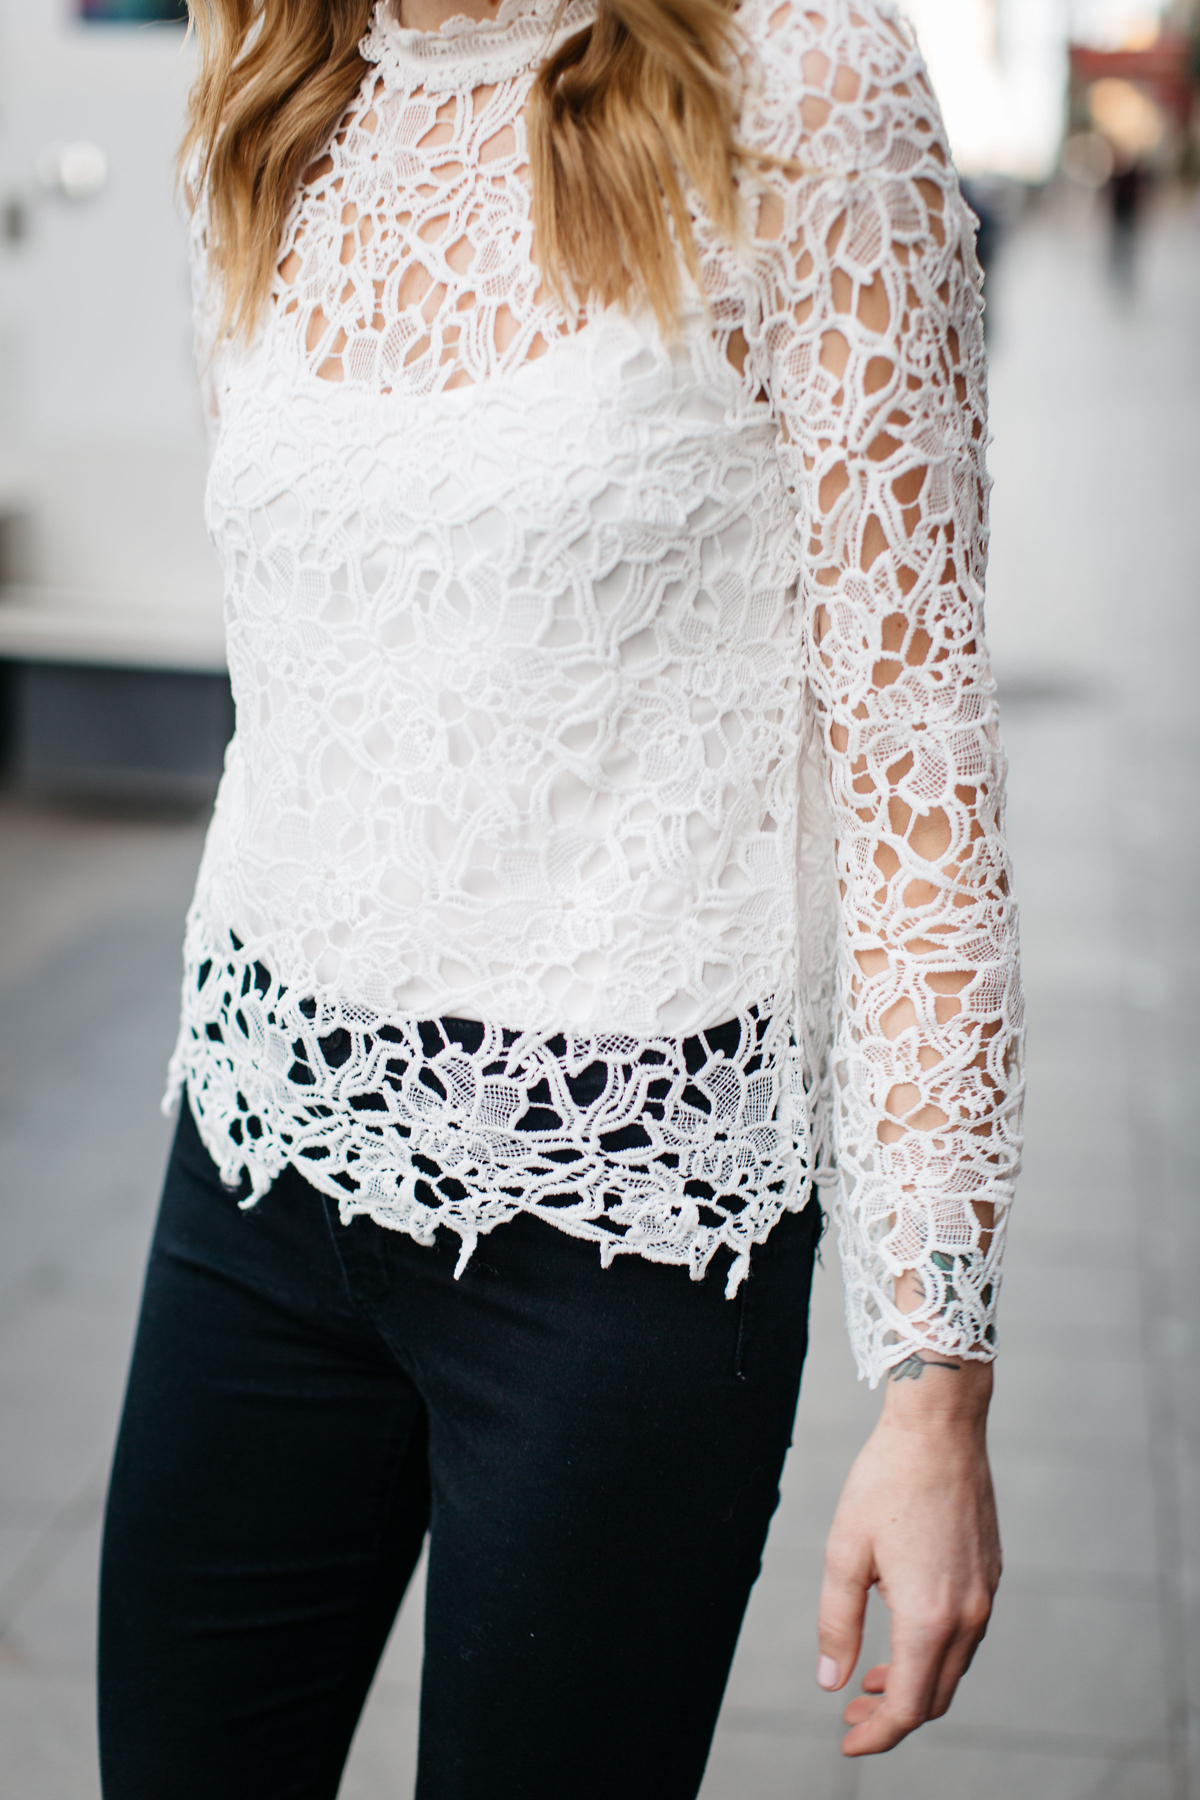 Fall Outfit, Winter Outfit, White Lace Long Sleeve Top, Black Skinny Jeans